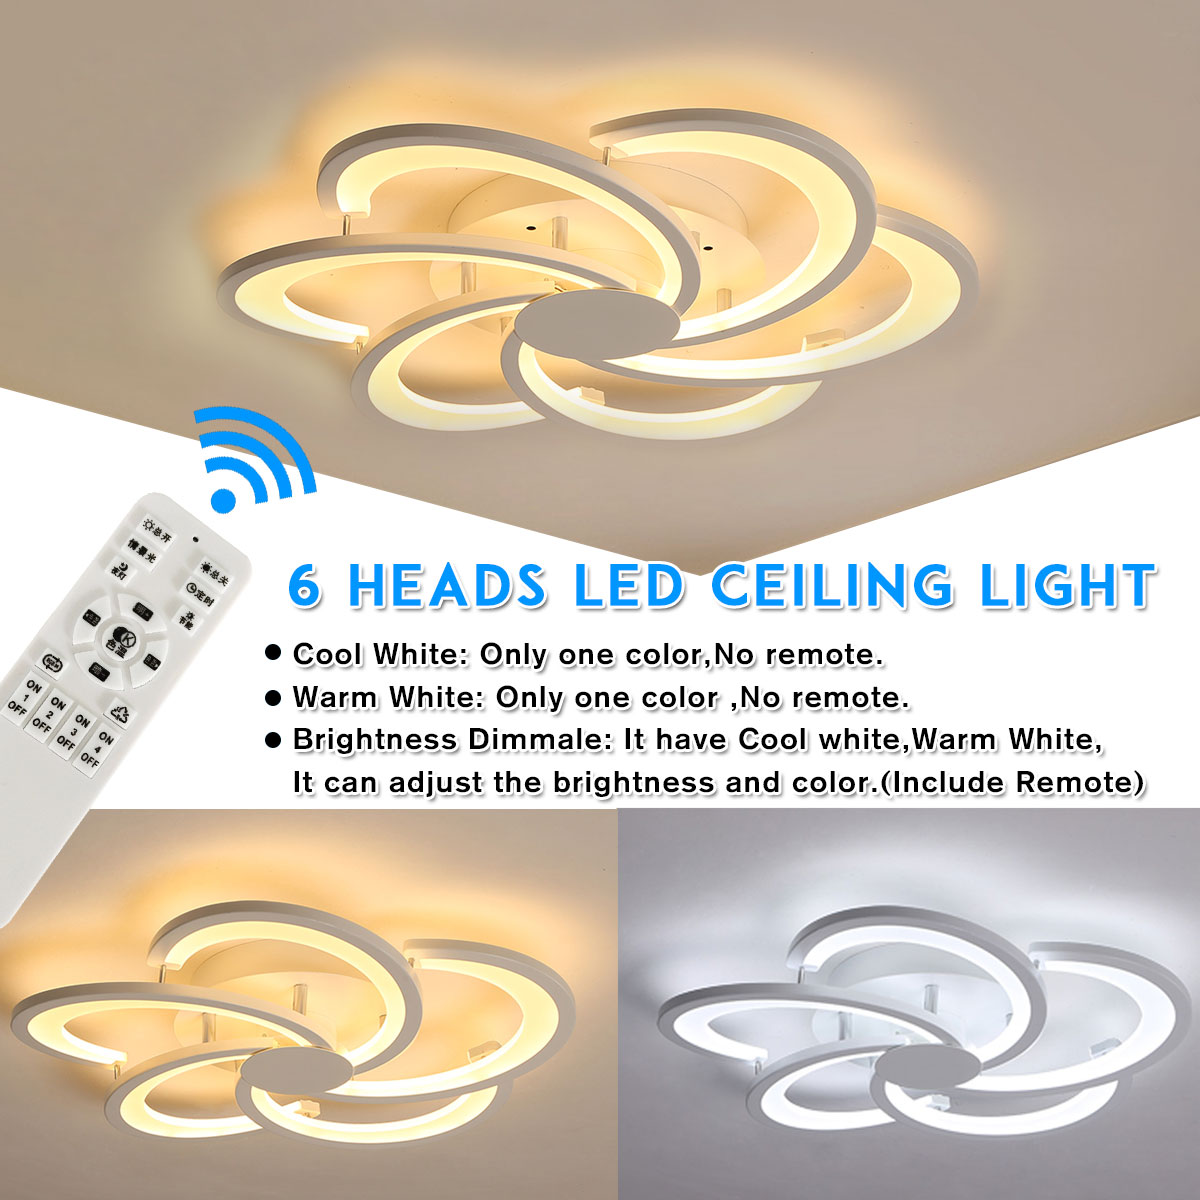 Modern 6 Heads LED Ceiling Lights Remote control for Living room Bedroom Aluminum boby indoor Lamp flush mountModern 6 Heads LED Ceiling Lights Remote control for Living room Bedroom Aluminum boby indoor Lamp flush mount